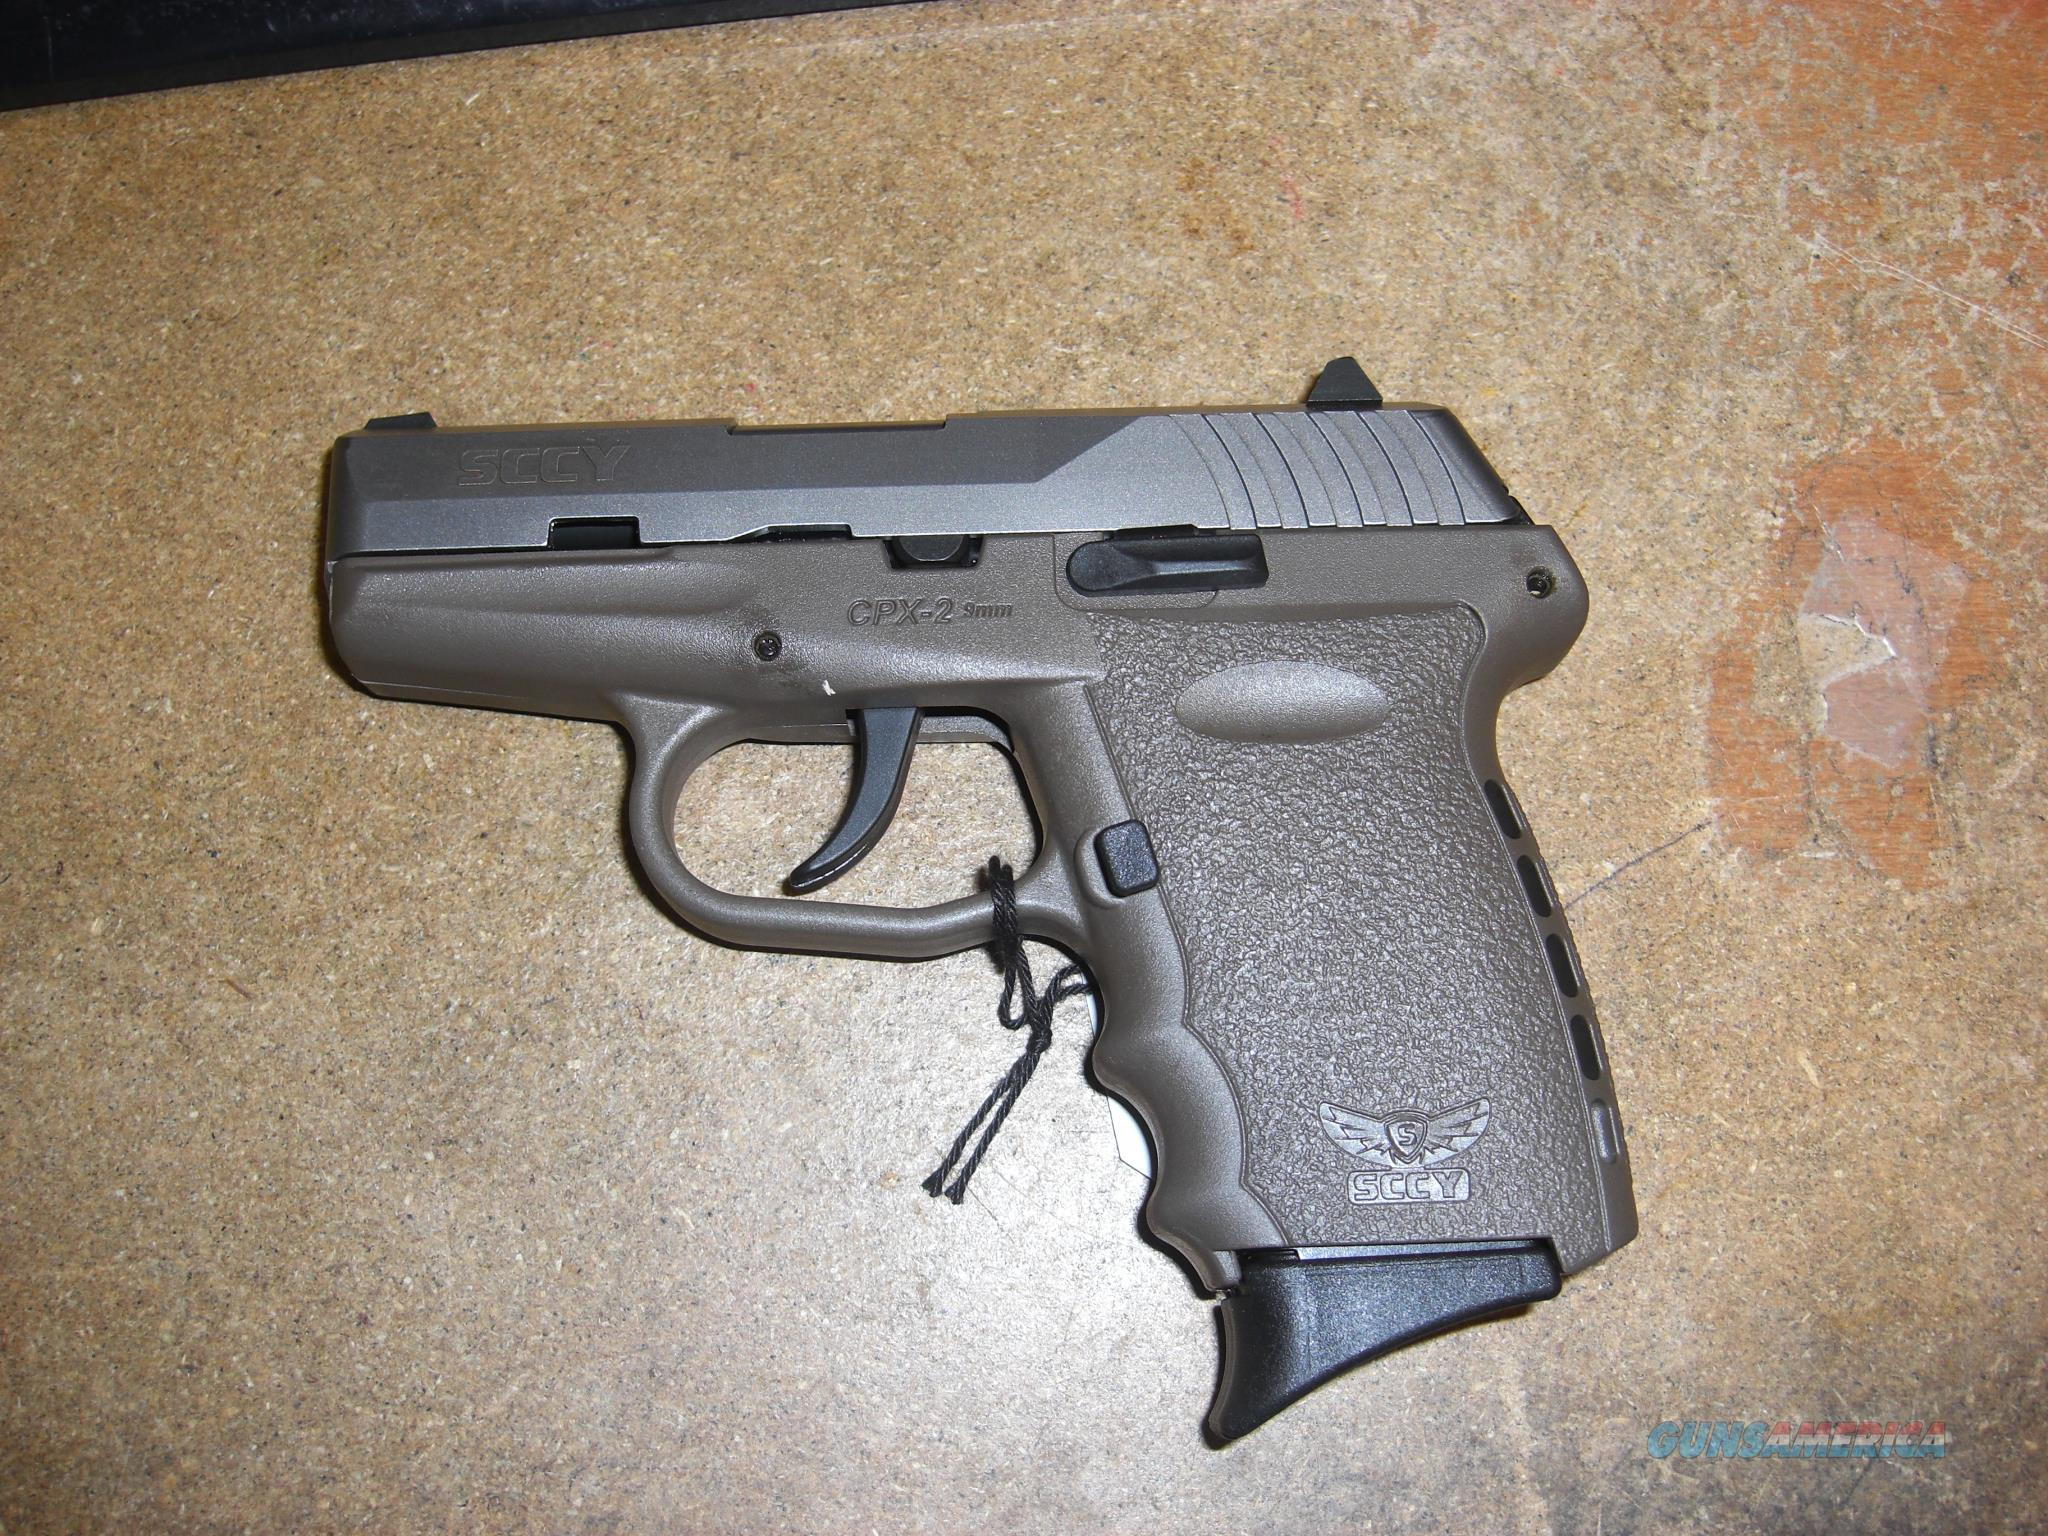 SCCY CPX-2 w/2 tone FDE finish, no external safety  Guns > Pistols > S Misc Pistols